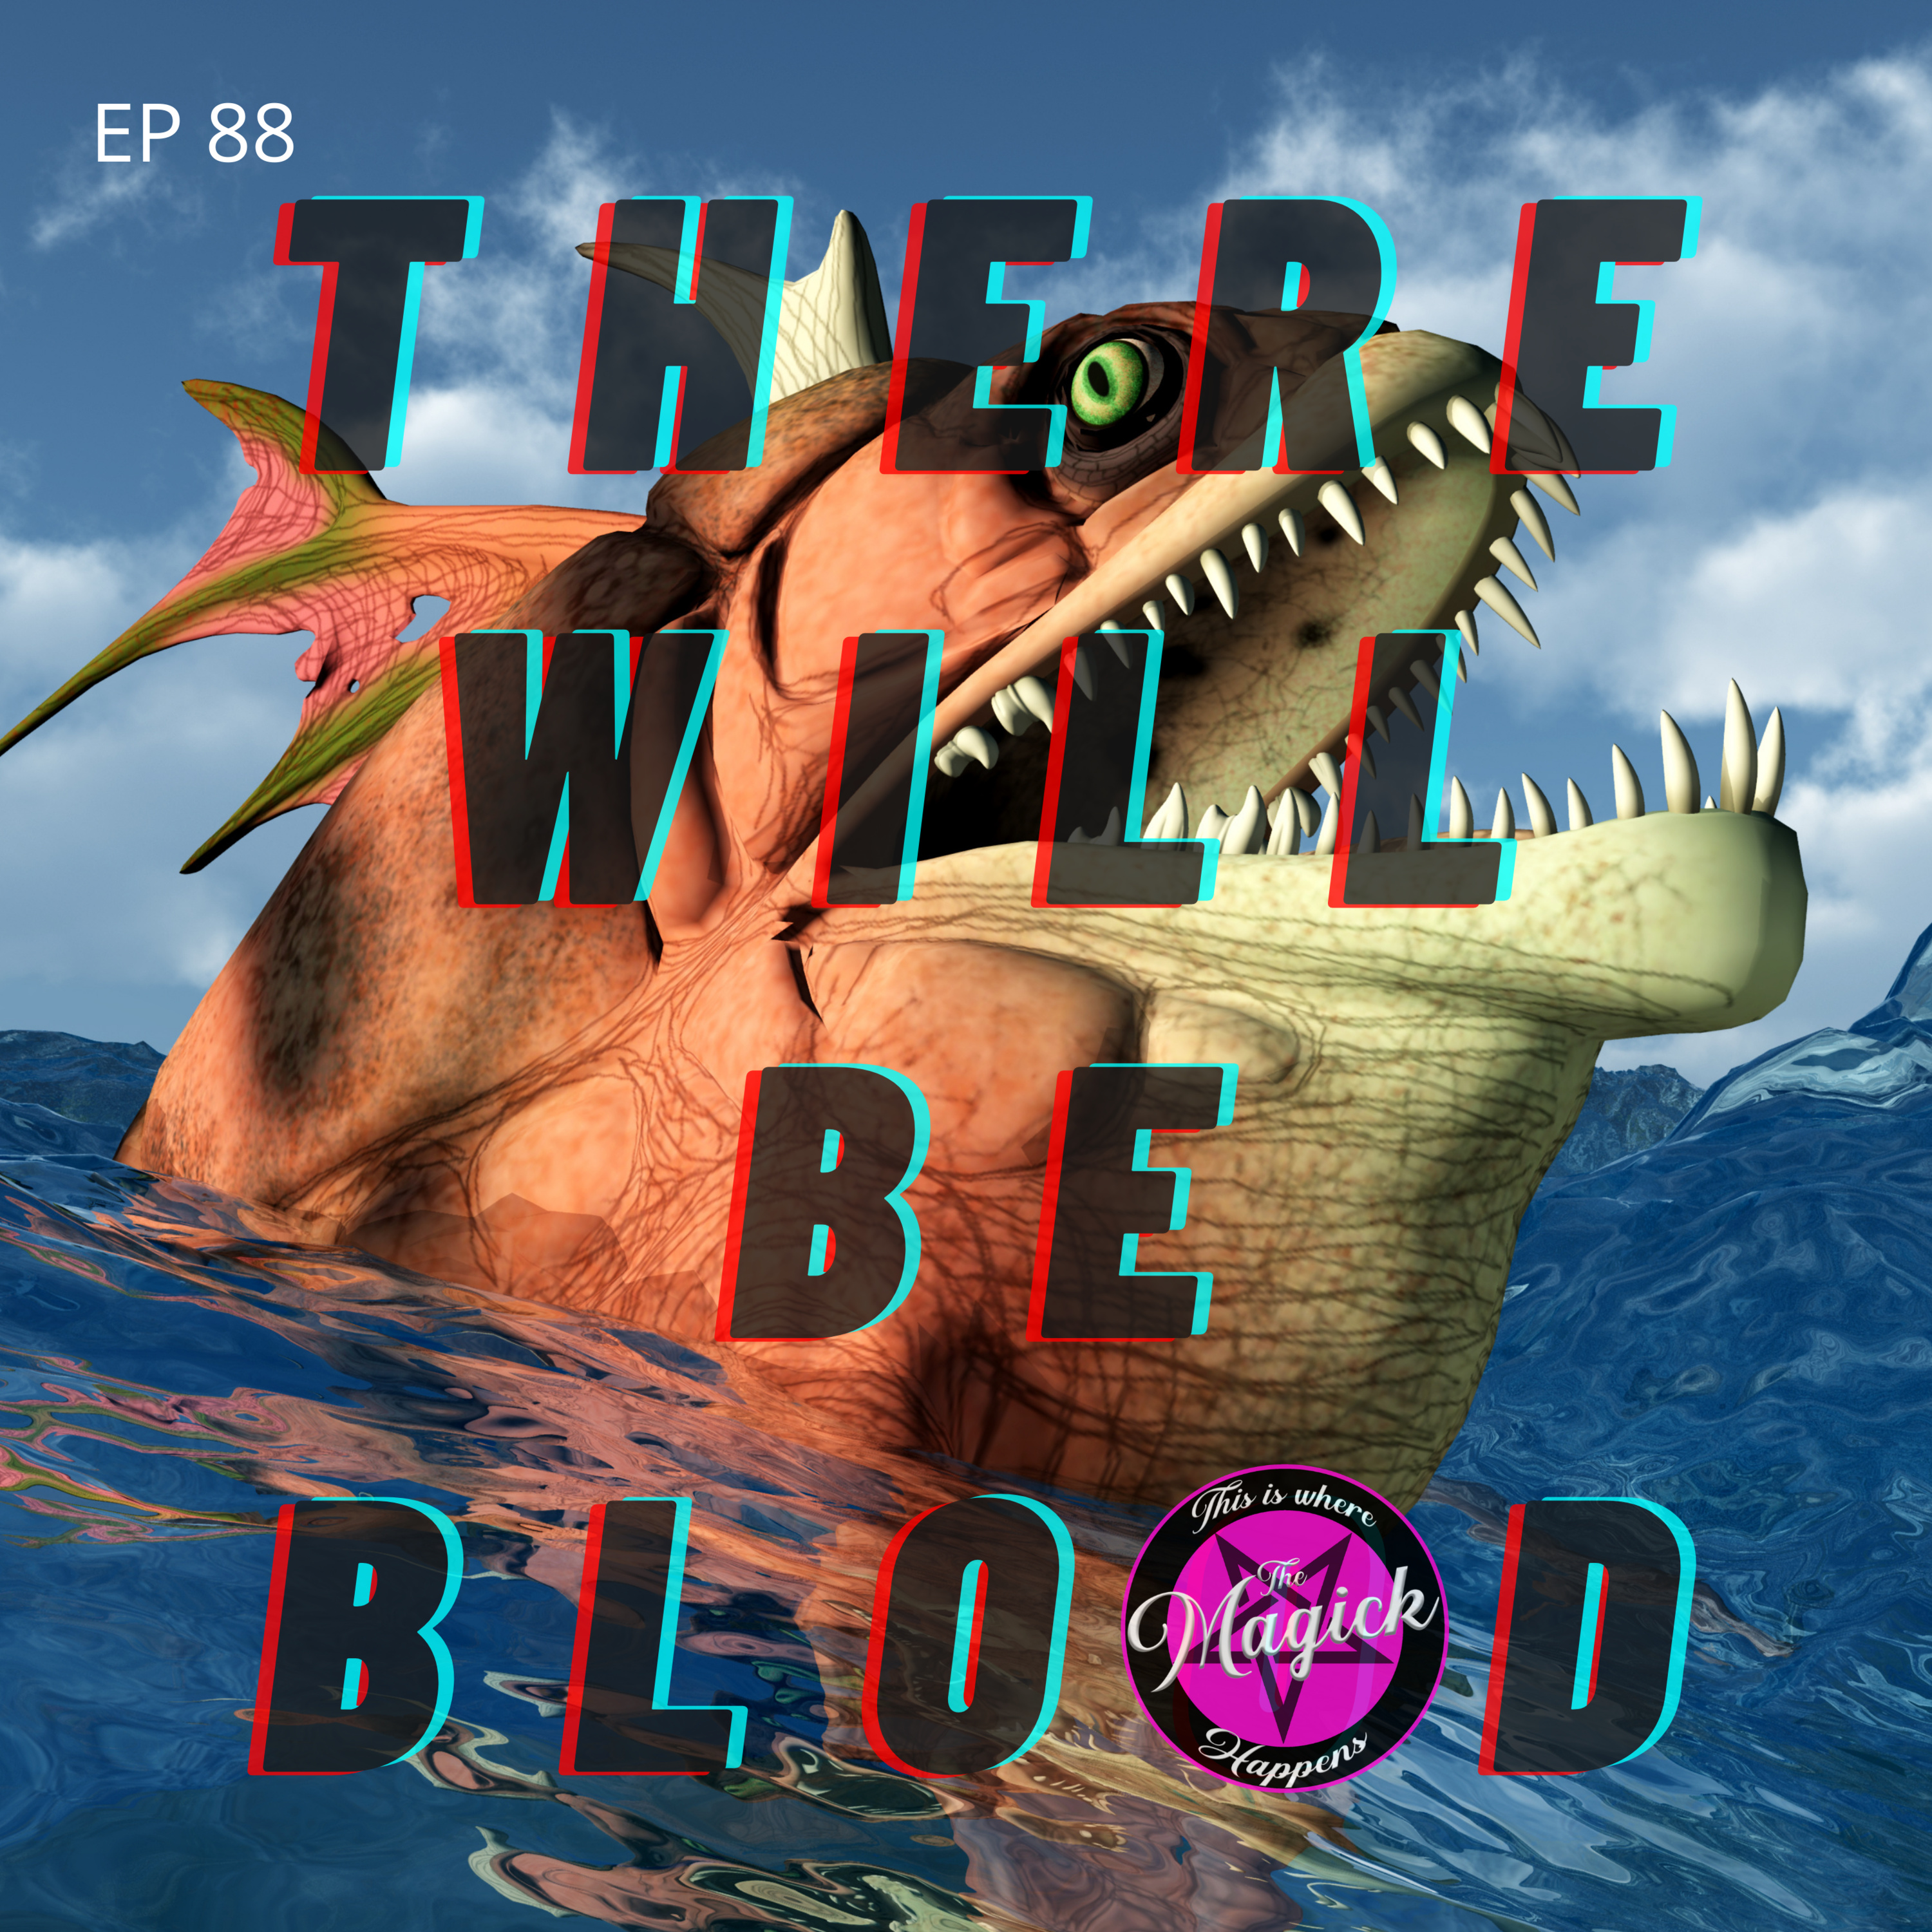 Ep 88 - There Will Be Blood